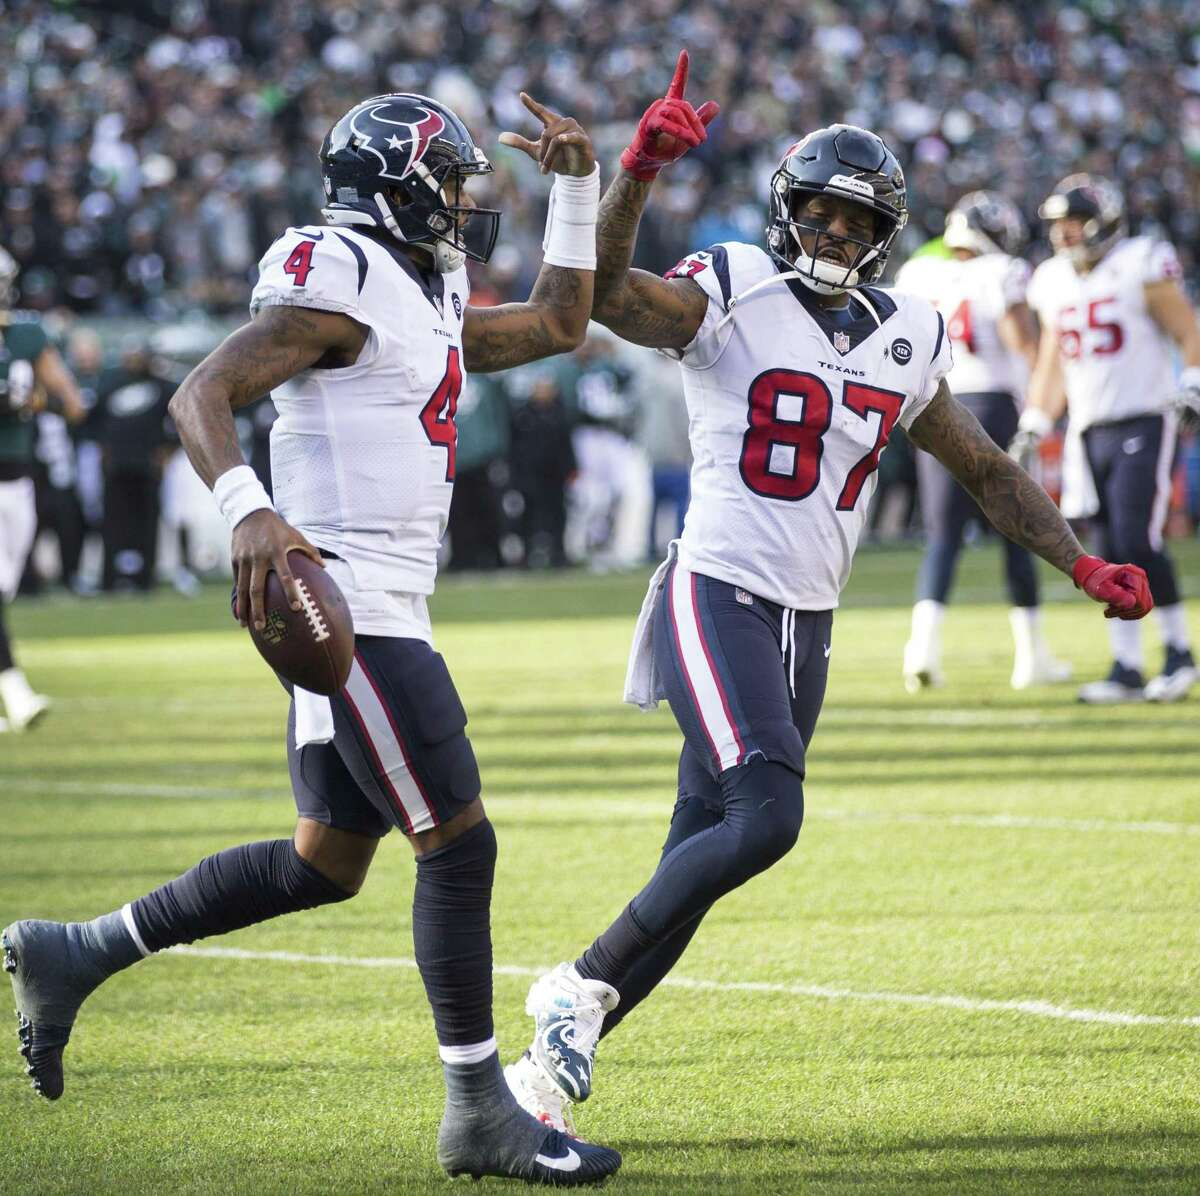 Houston Texans quarterback Deshaun Watson (4) and Houston Texans wide receiver Demaryius Thomas (87) celebrate Watson's 6-yard touchdown run against the Philadelphia Eagles during the first half of an NFL football game at Lincoln Financial Field on Sunday, Dec. 23, 2018, in Philadelphia.